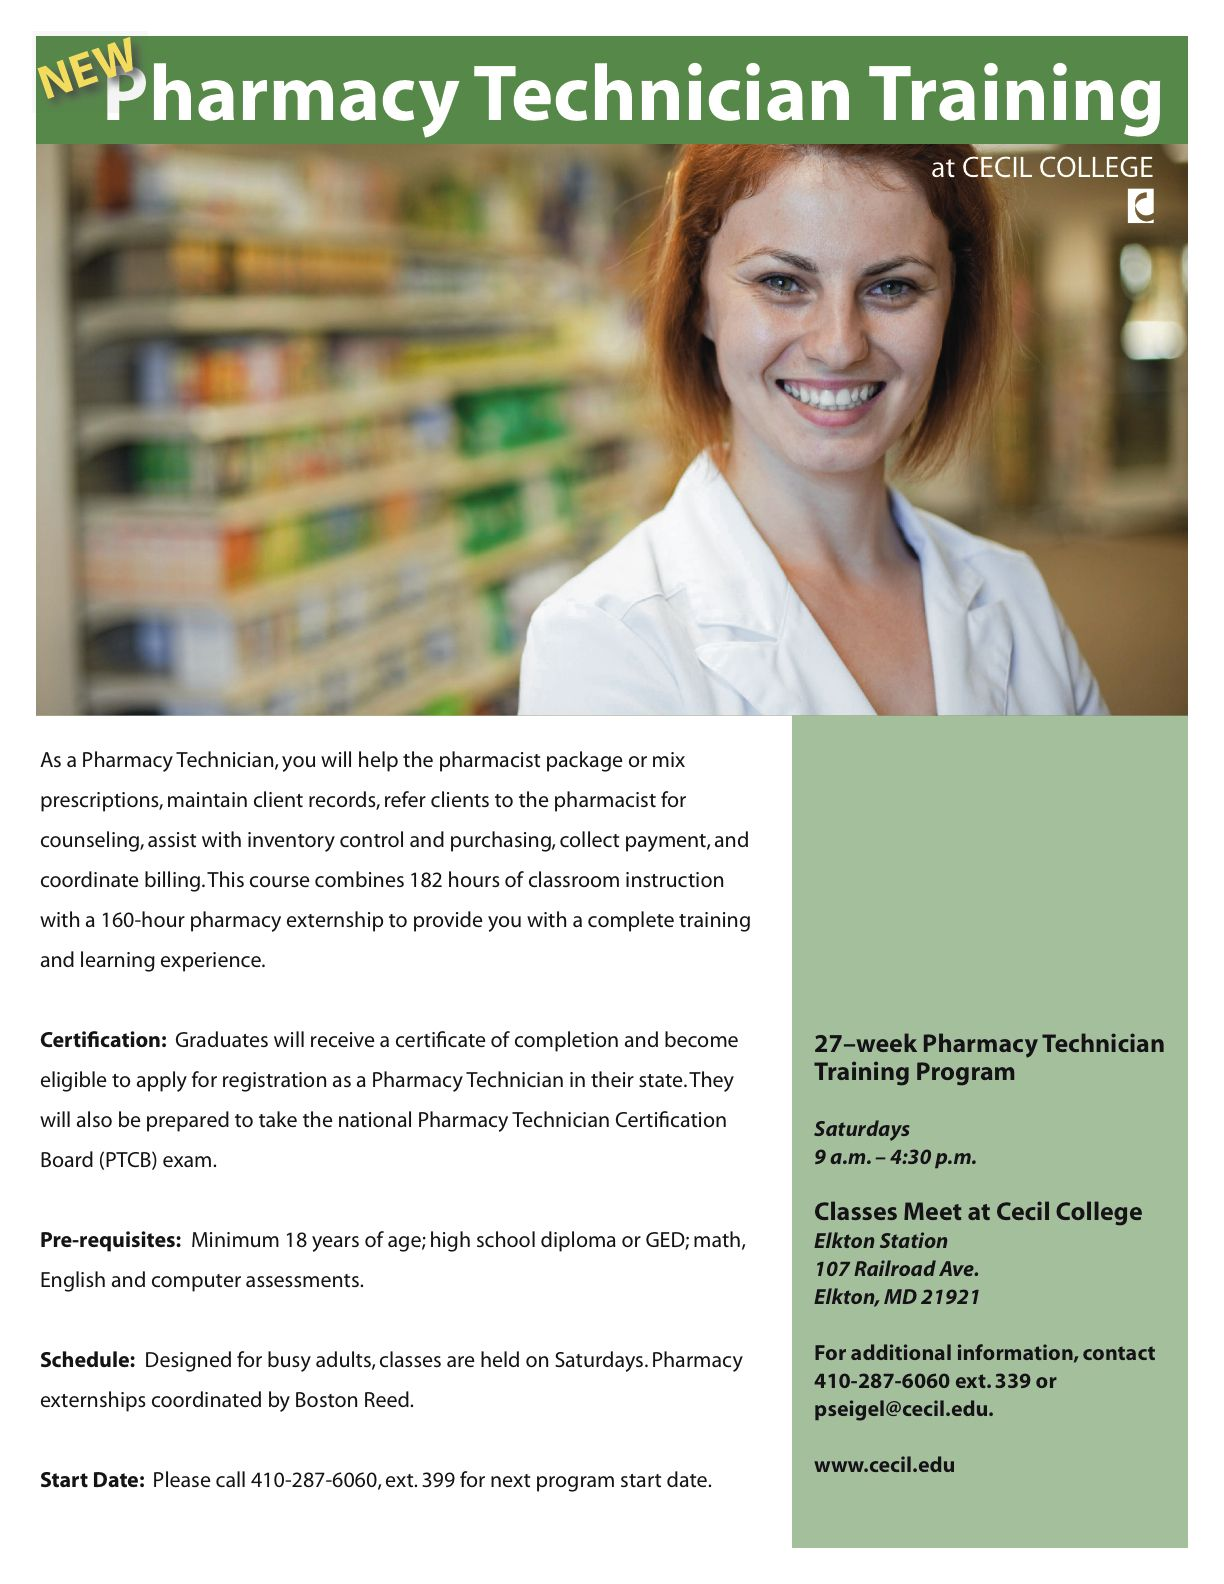 Education Pharmacy Technician - Best Image And Wallpaper ...